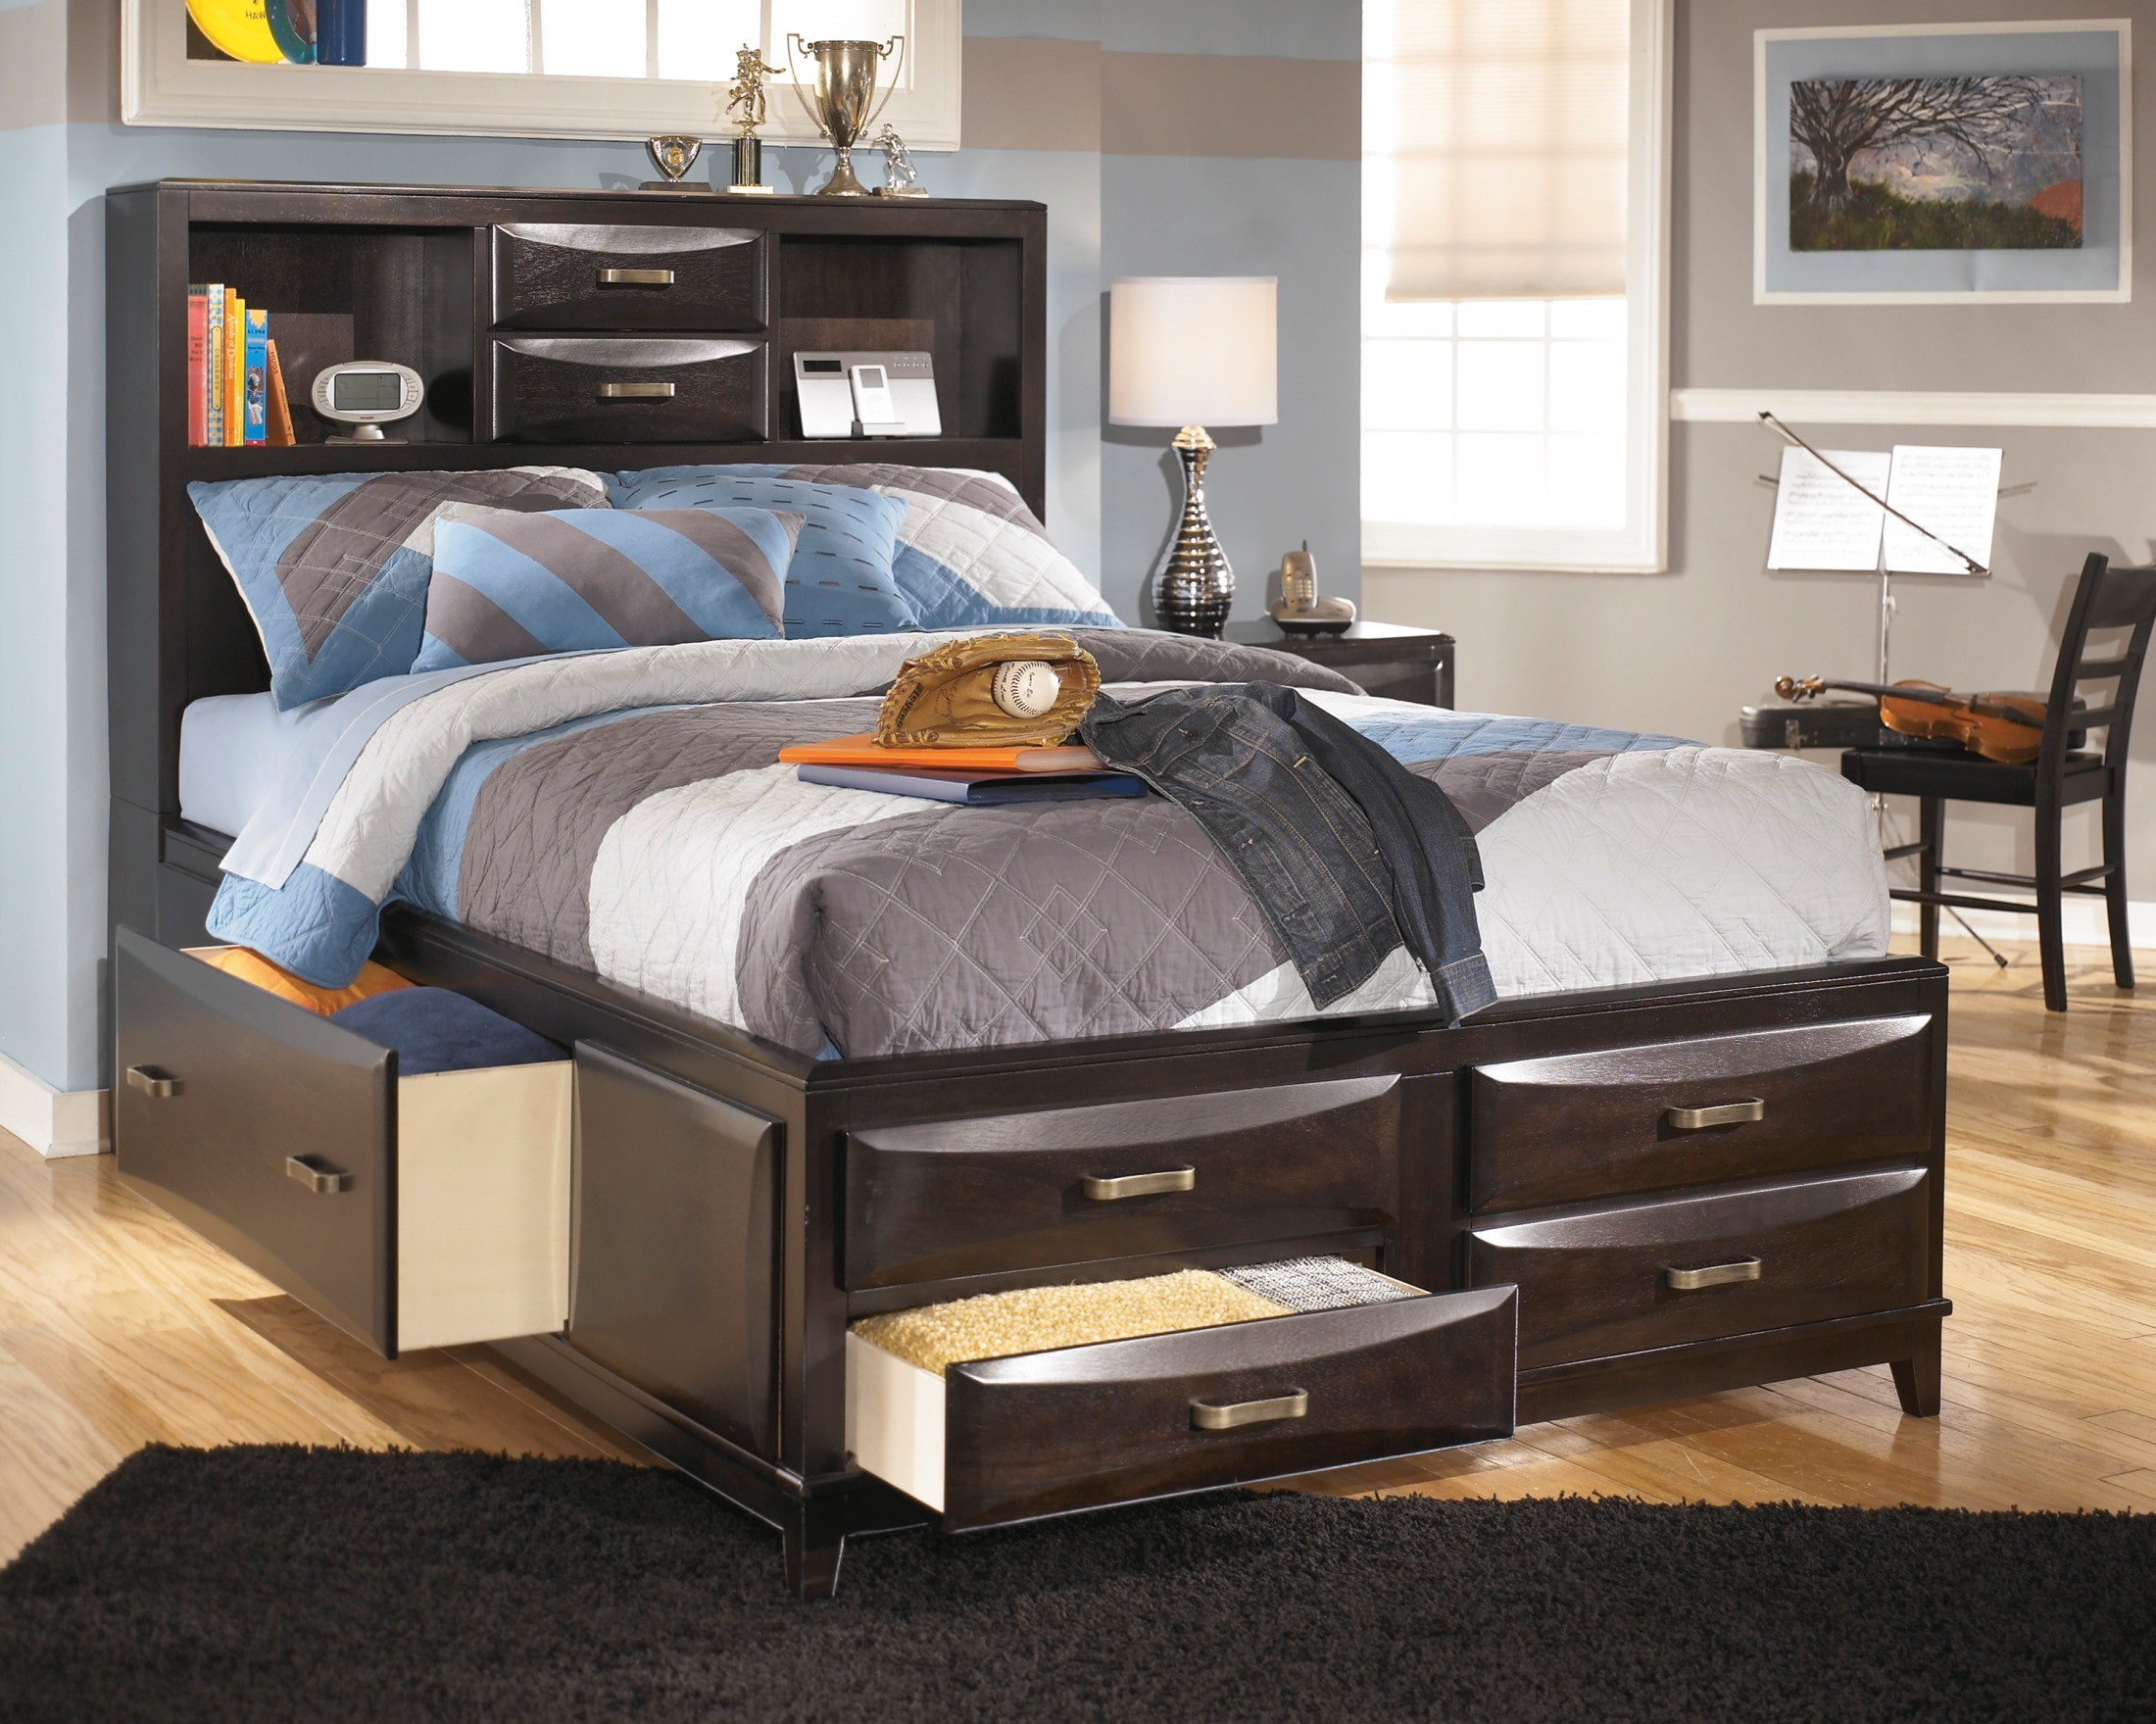 Kira Youth Storage Bedroom Set From Ashley B473 Coleman Furniture